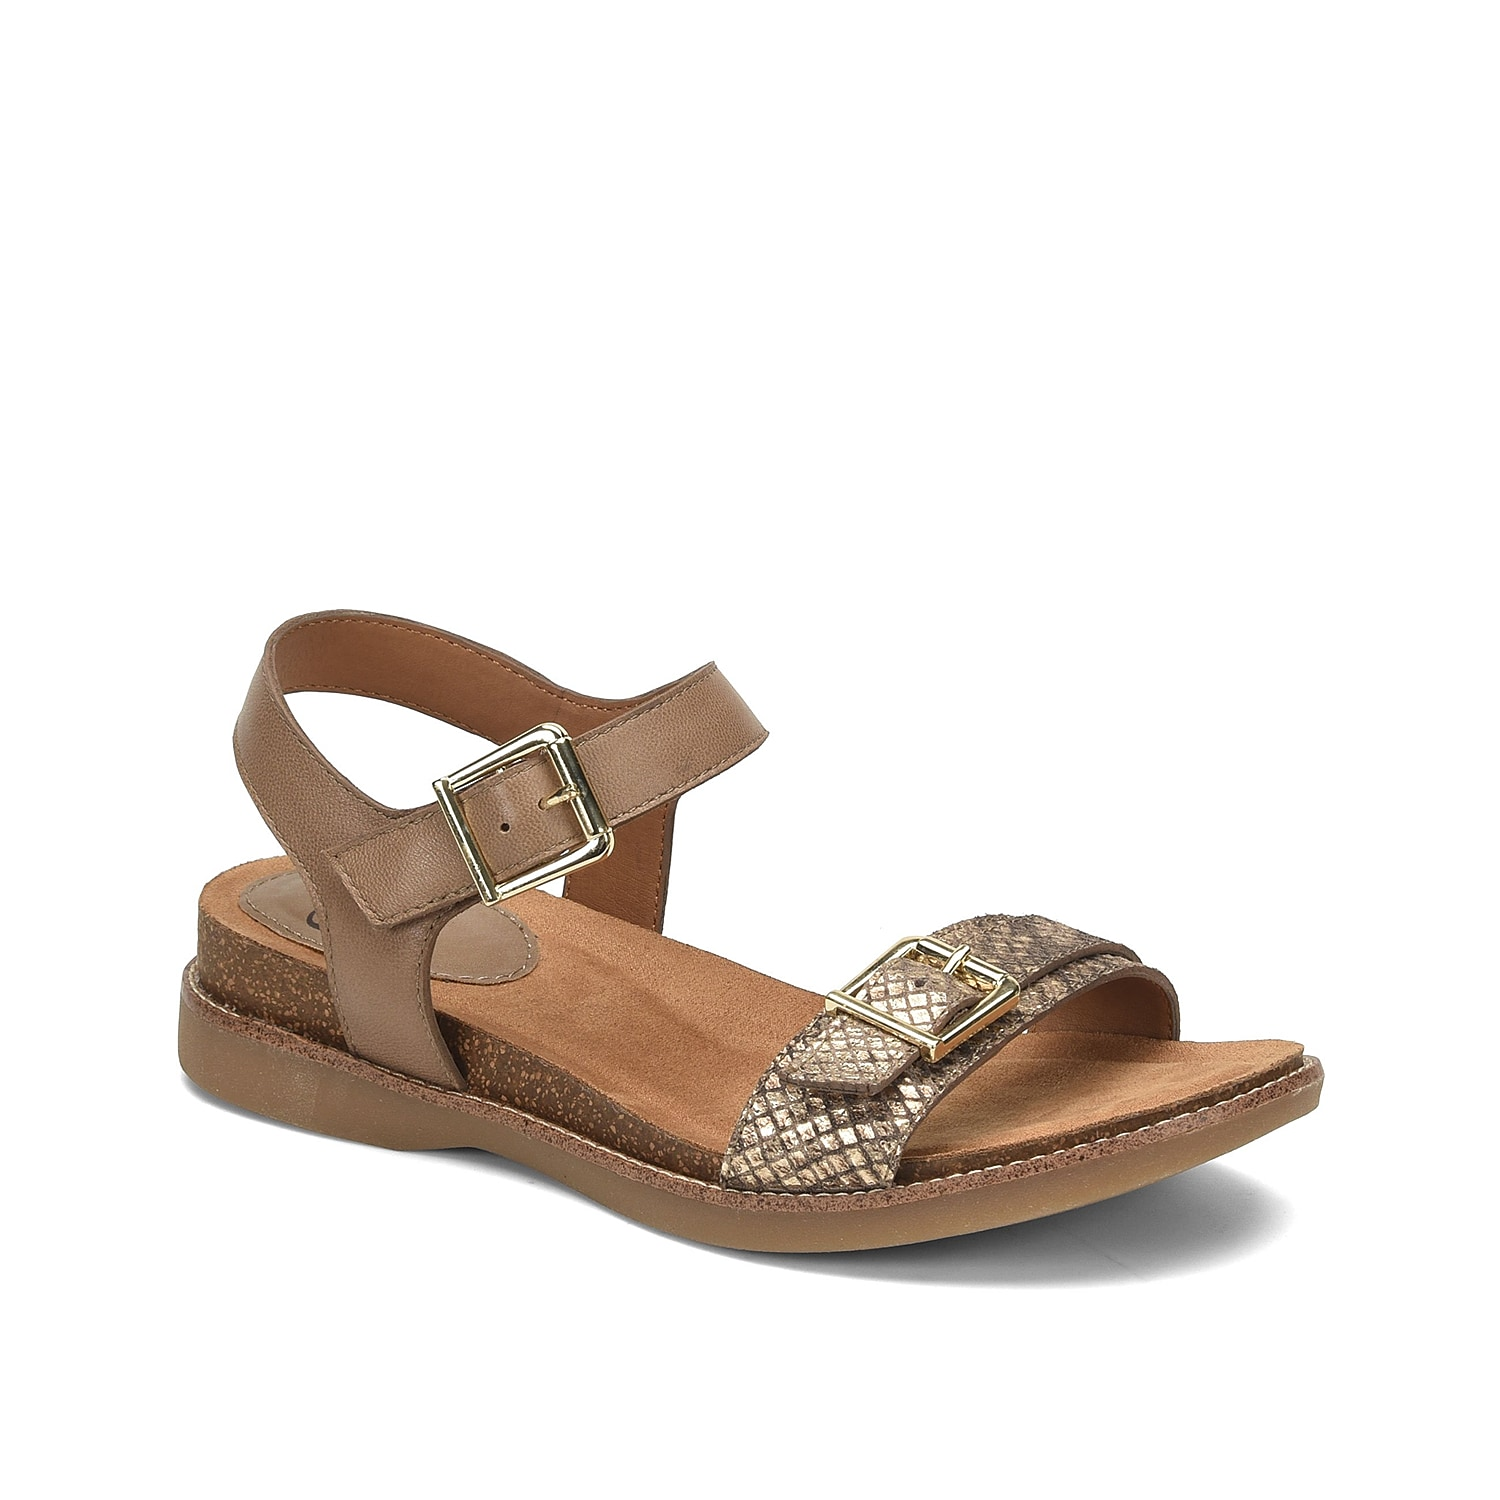 Get the comfort you need with the Balsam sandal from Sofft. This two-piece pair features a cushioned comfort footbed and cork wedge for added support.